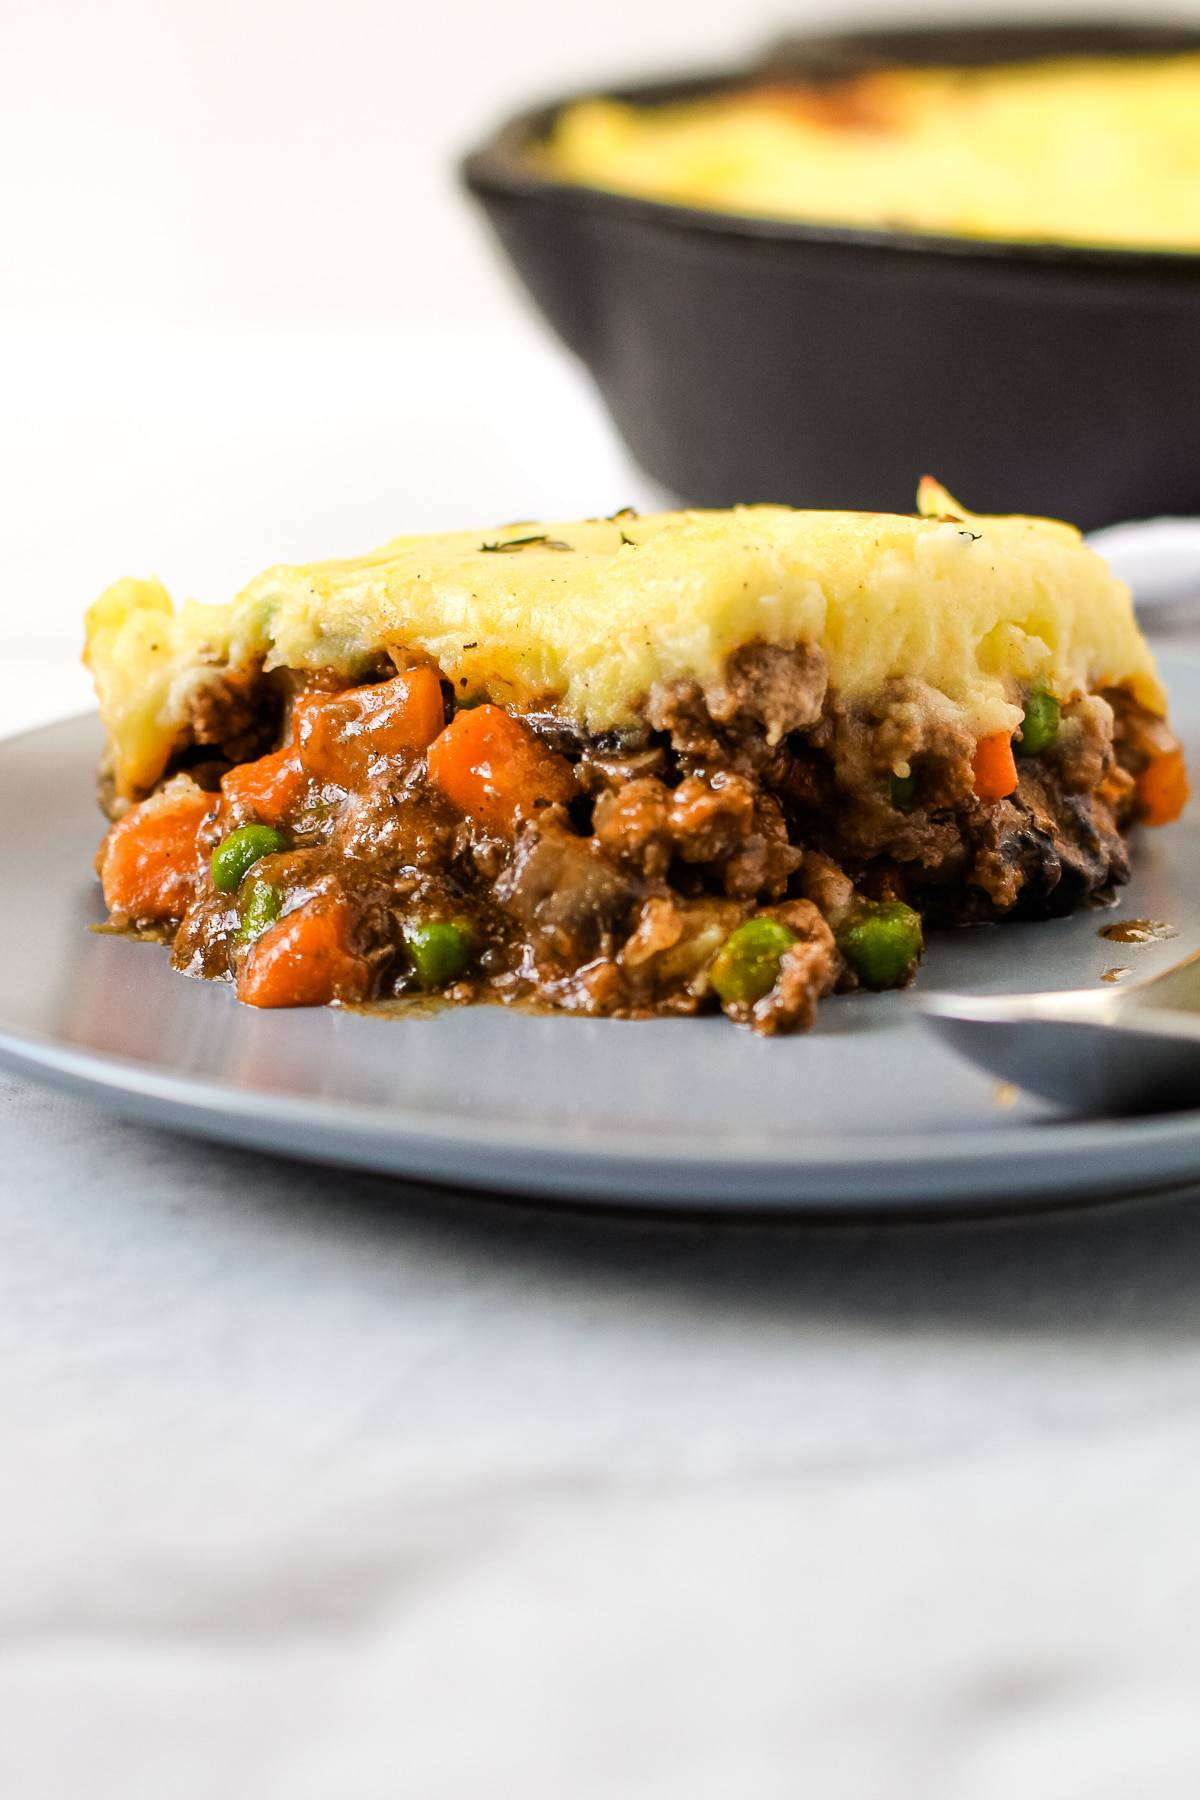 A serving of cottage pie.